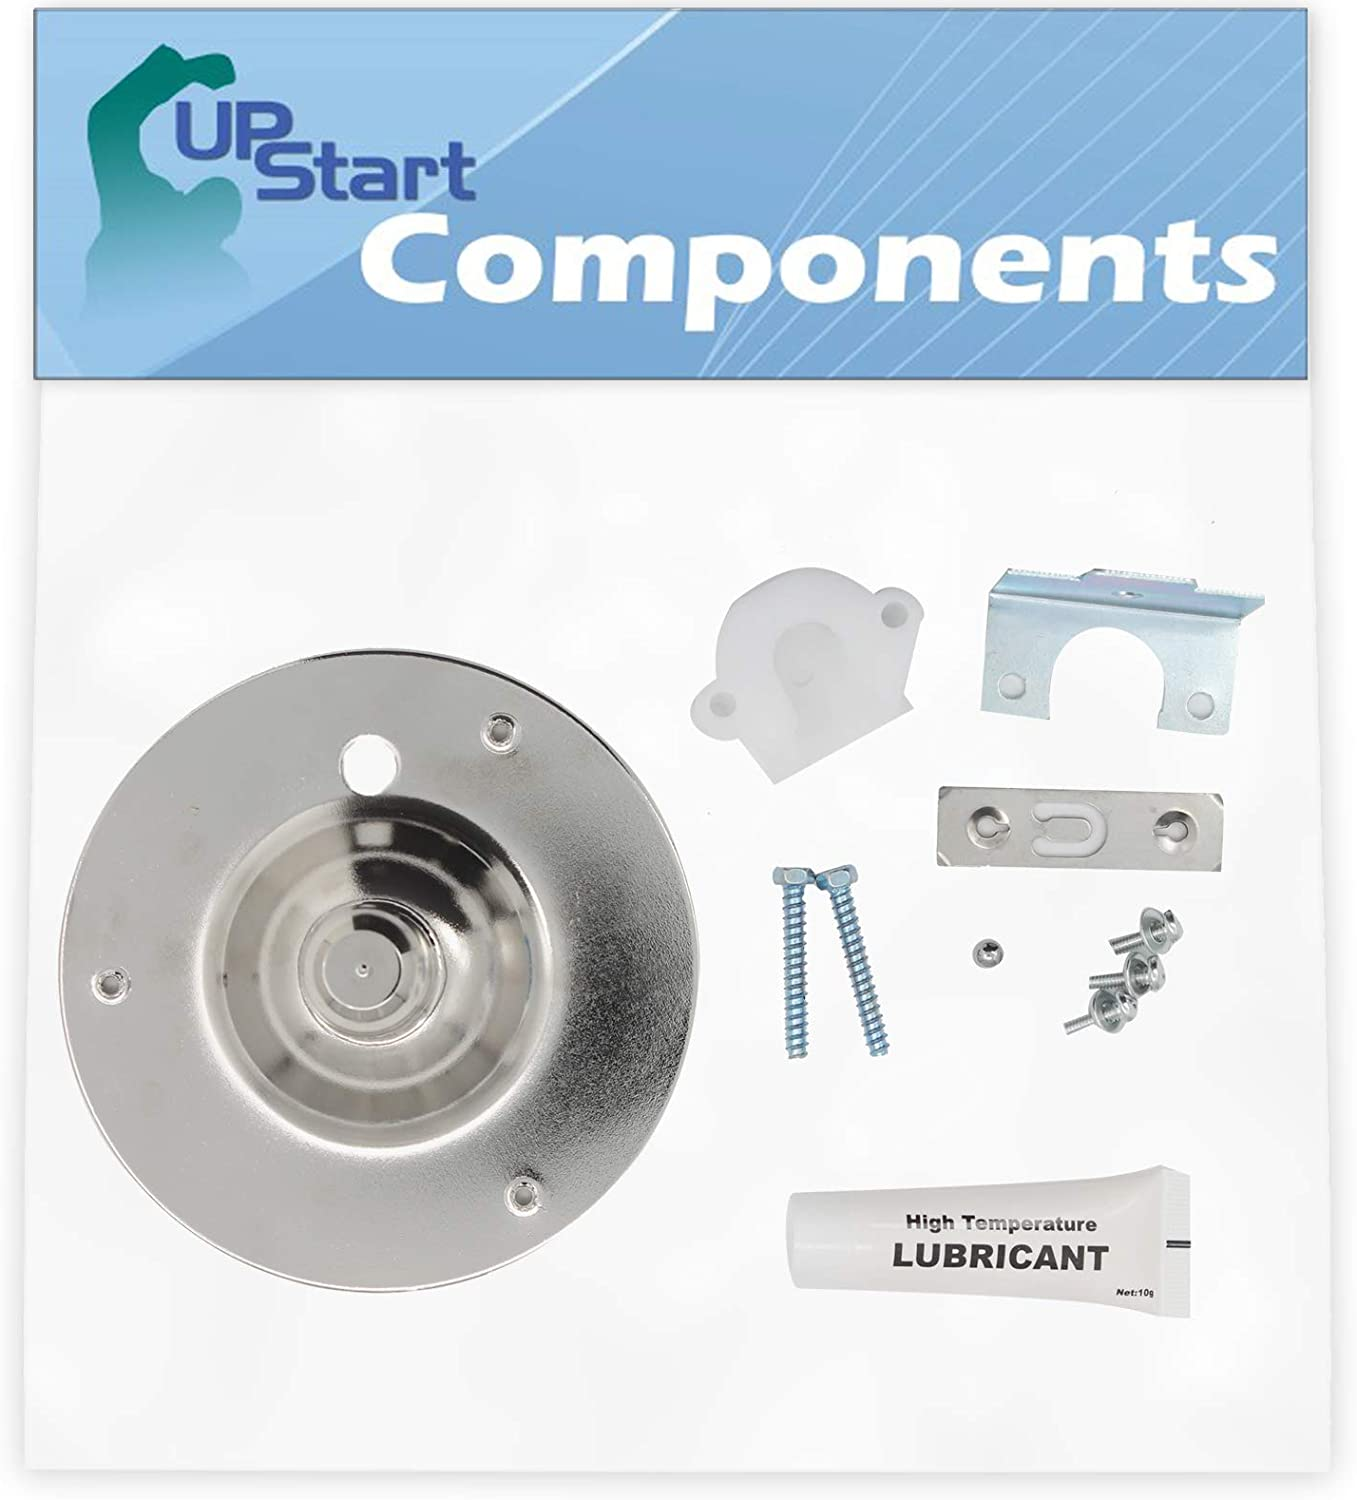 5303281153 Rear Drum Bearing Repair Kit Replacement for Frigidaire LGQ1442ES1 Dryer - Compatible with 5303281153 Rear Bearing Kit - UpStart Components Brand